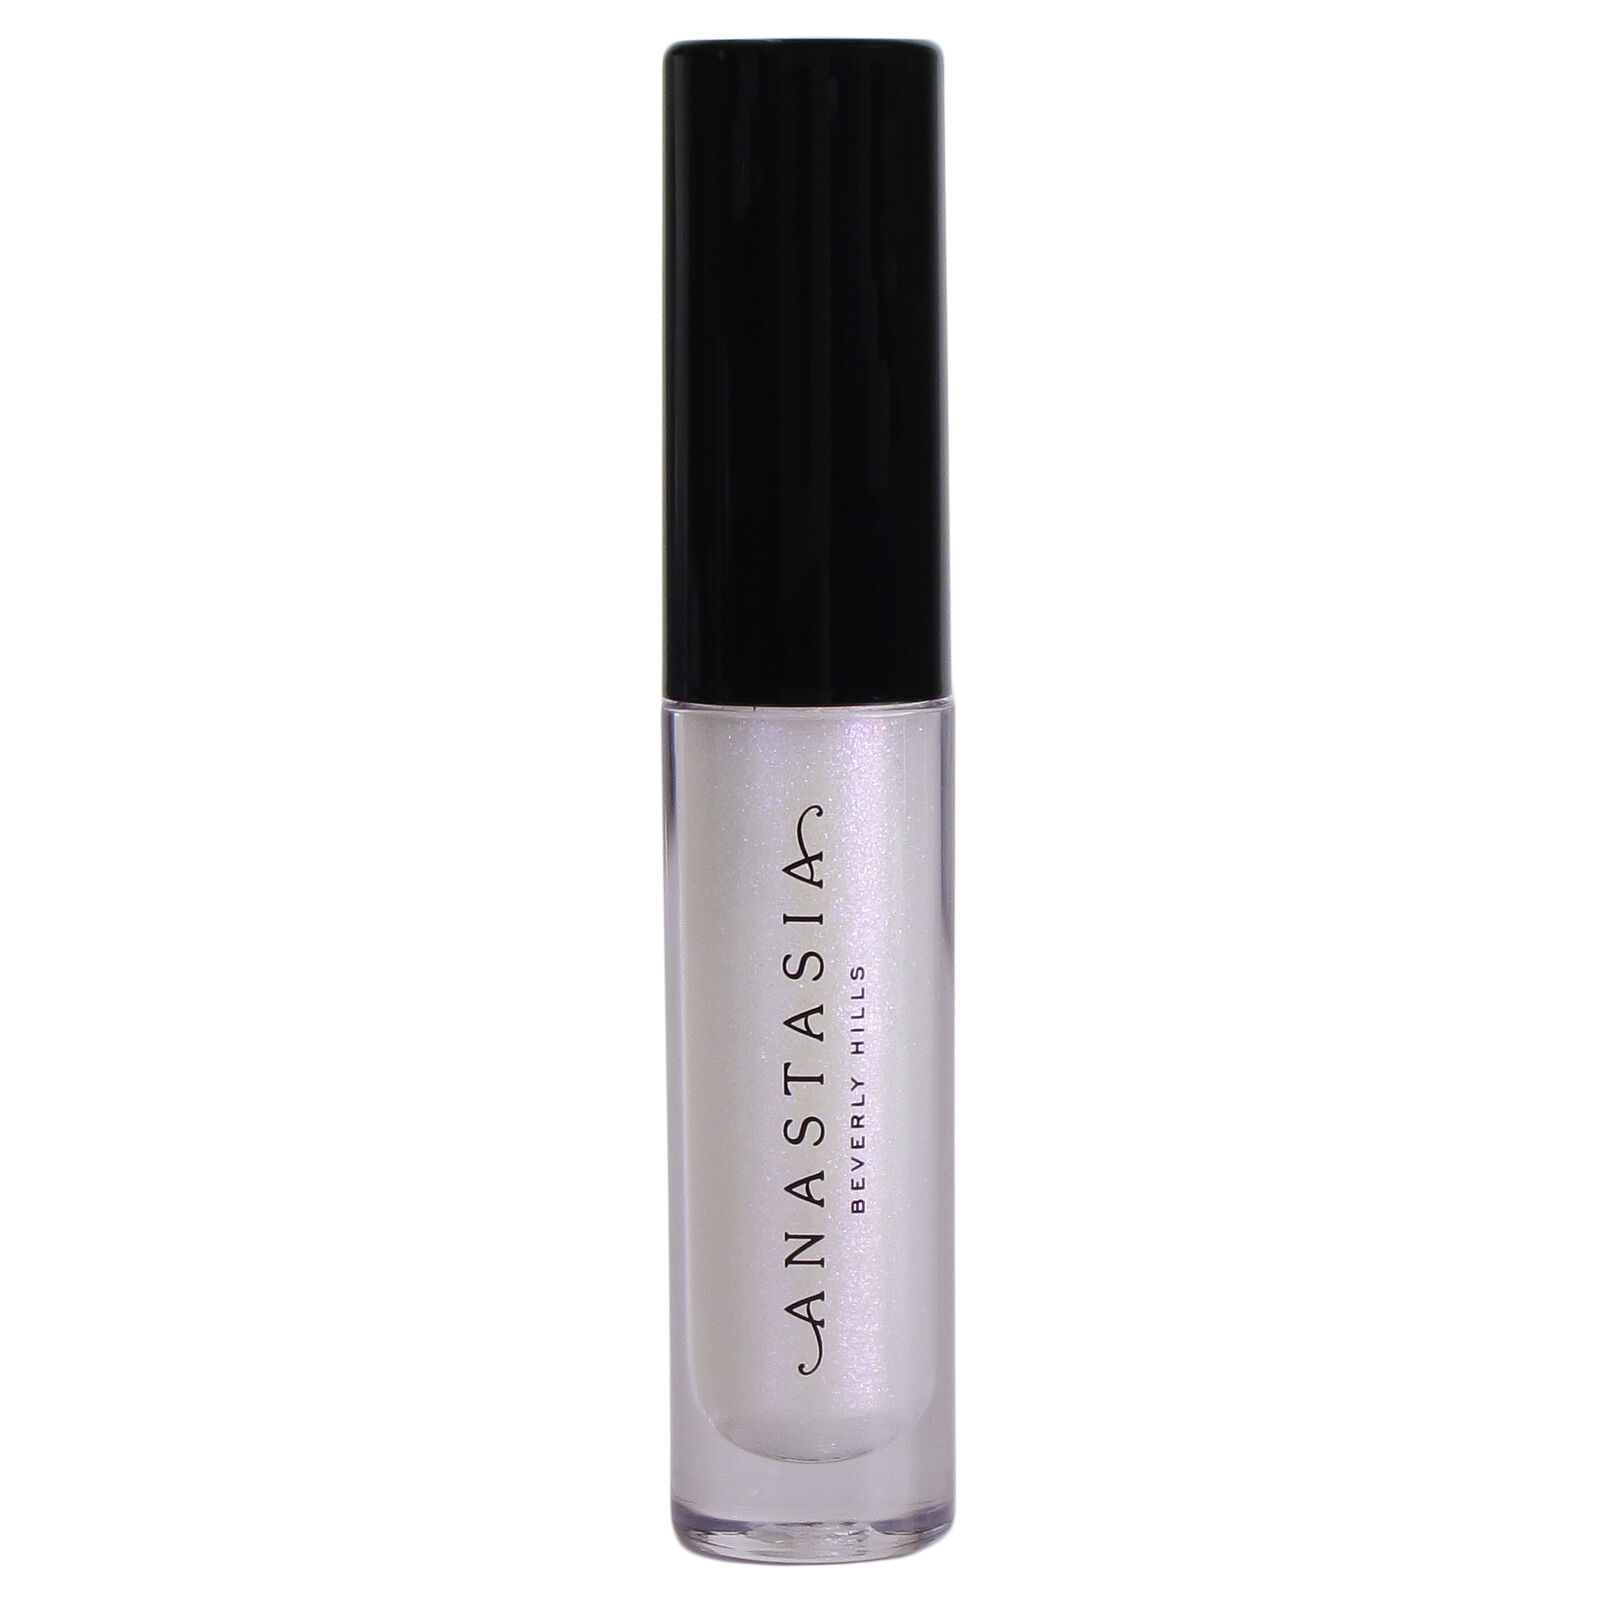 Primary image for Anastasia Beverly Hills Lip Gloss - Moon Jelly, Travel Size 0.07oz/2g - SEALED